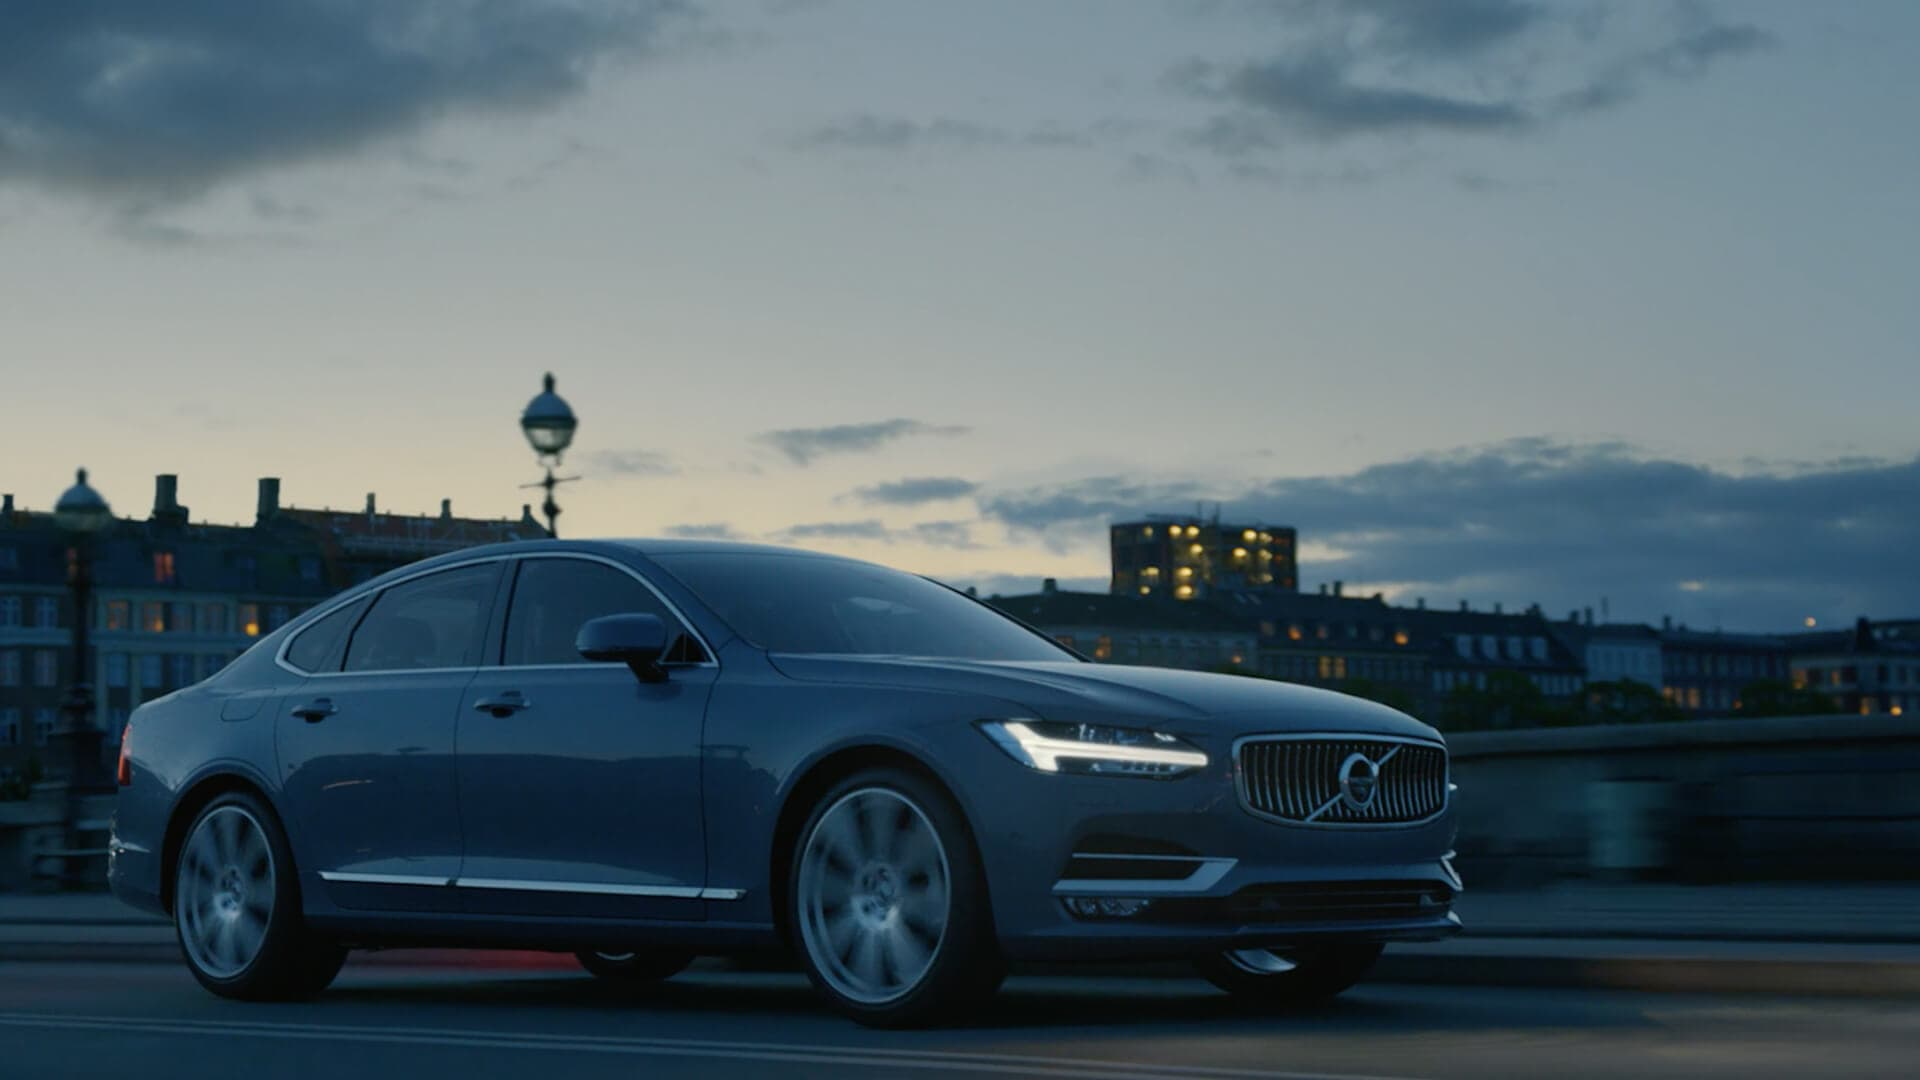 Volvo S90 HD Wallpapers